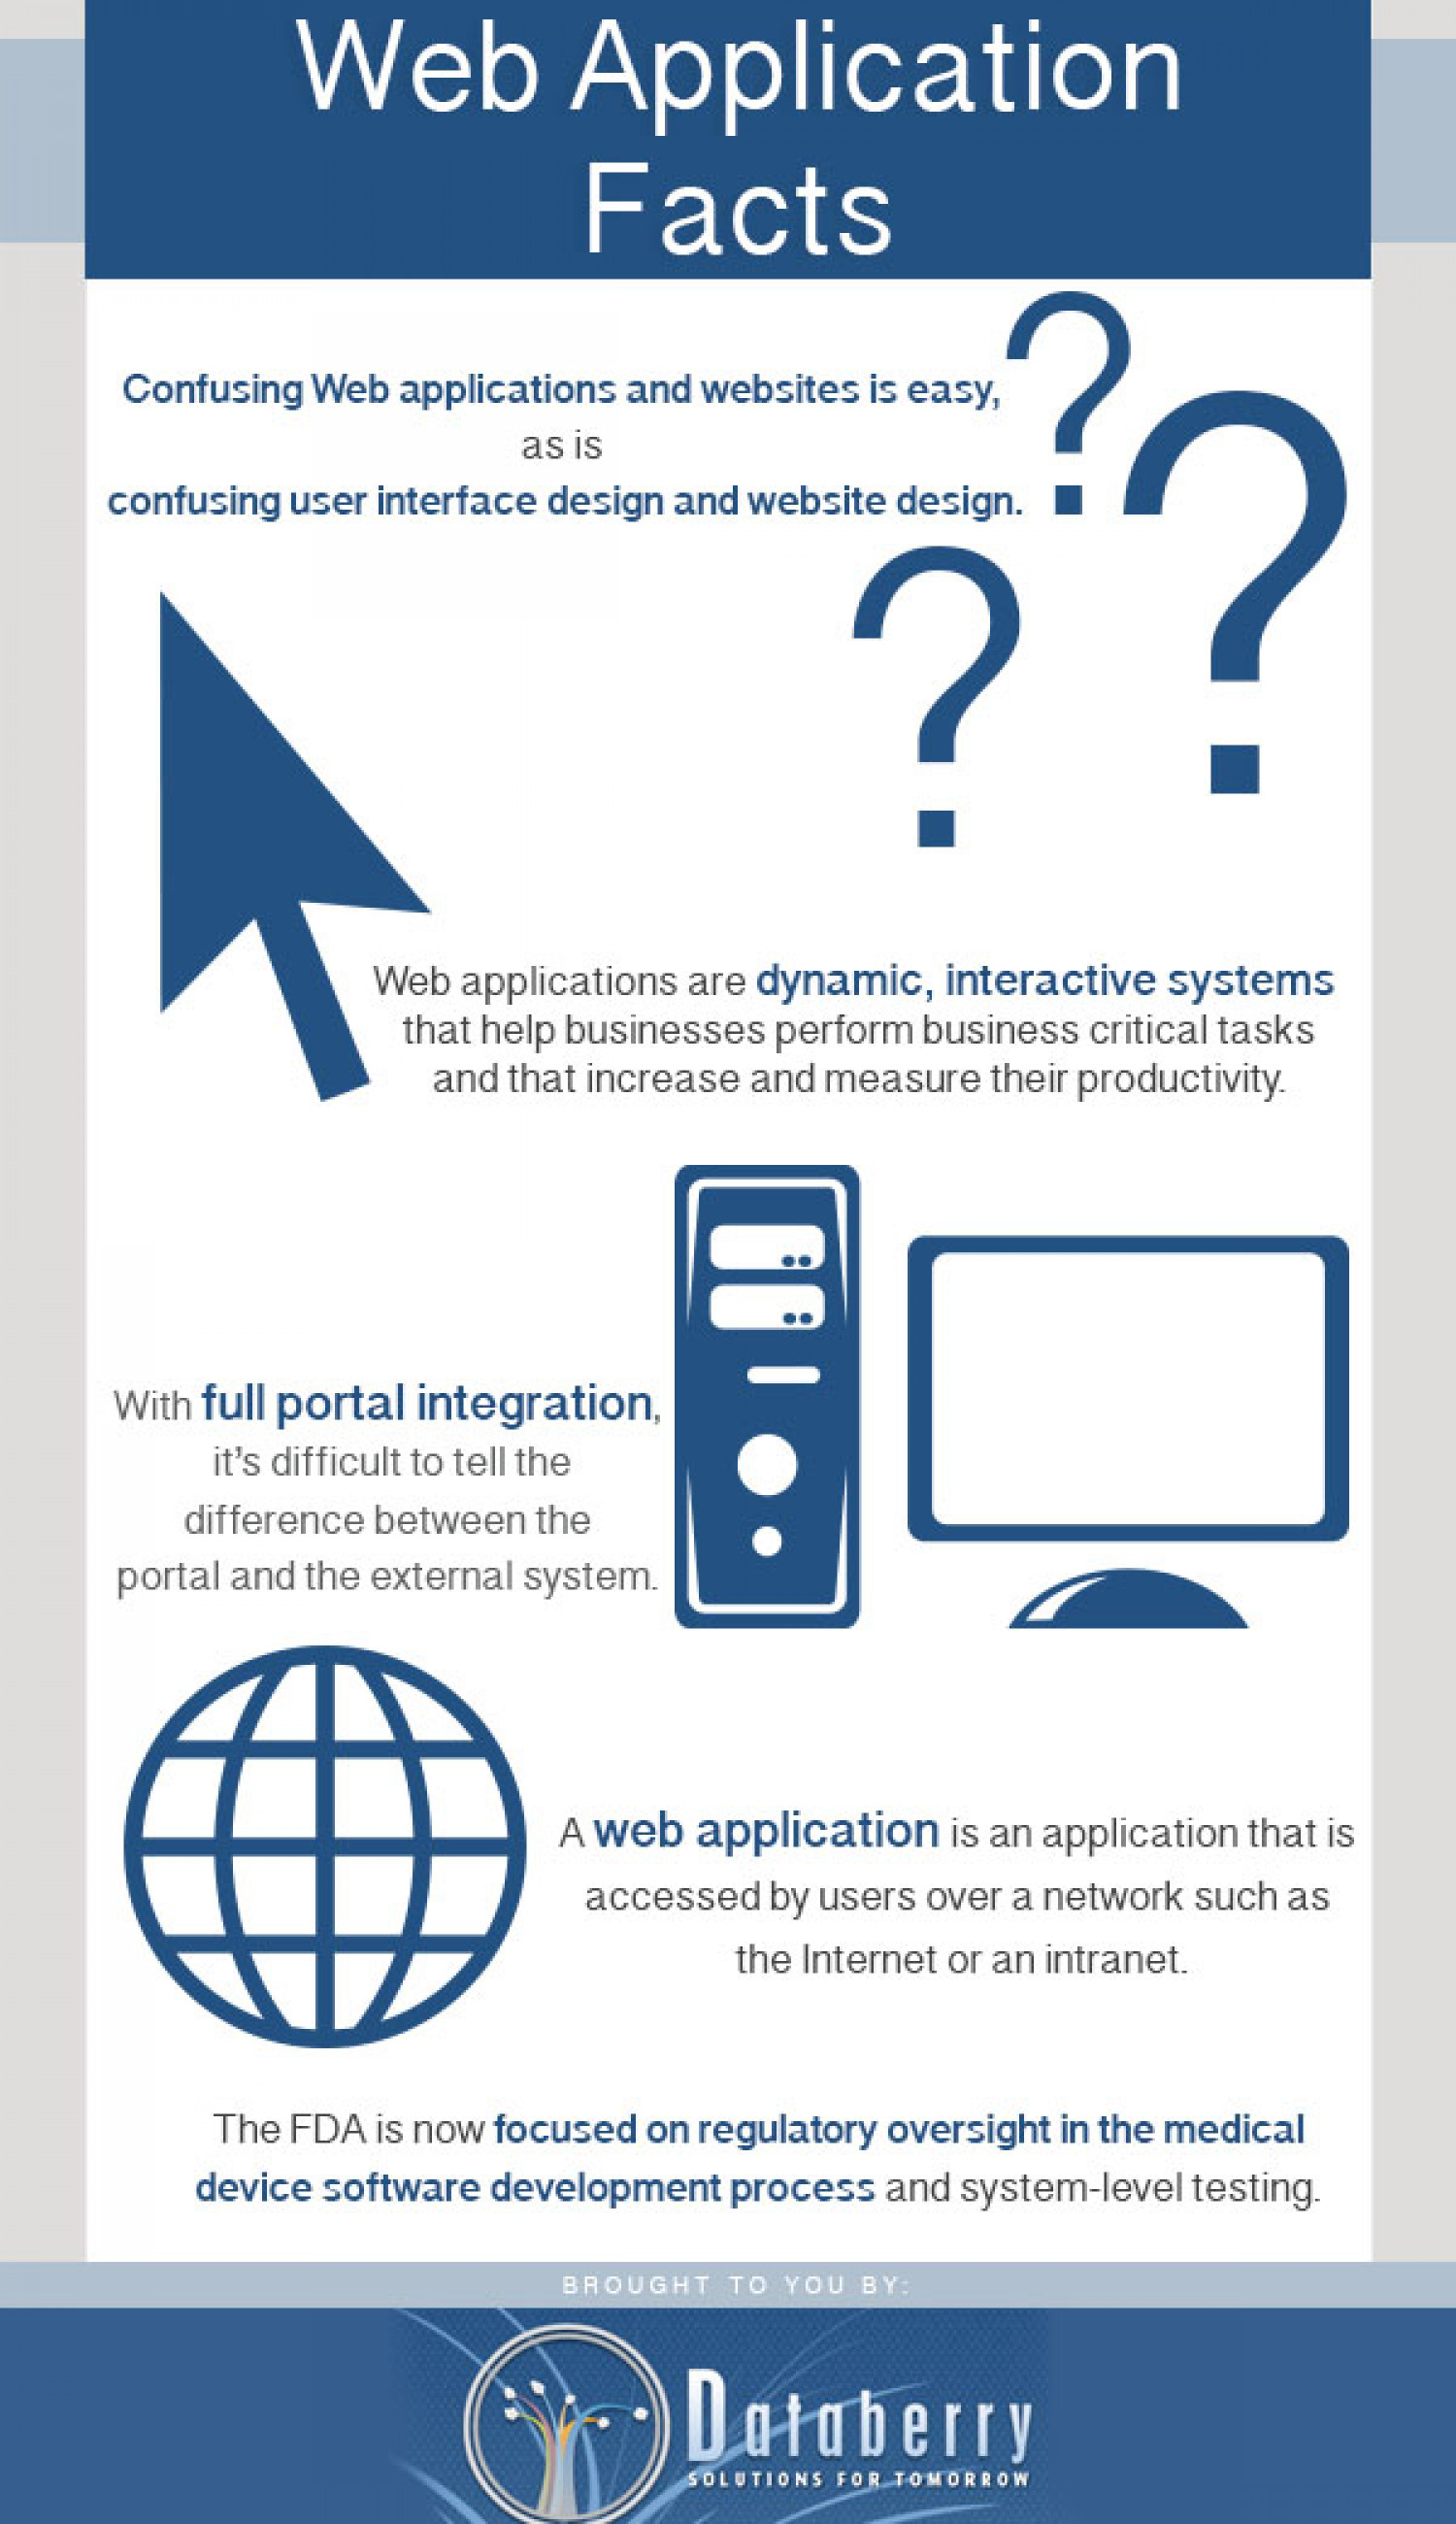 Web Application Facts Infographic